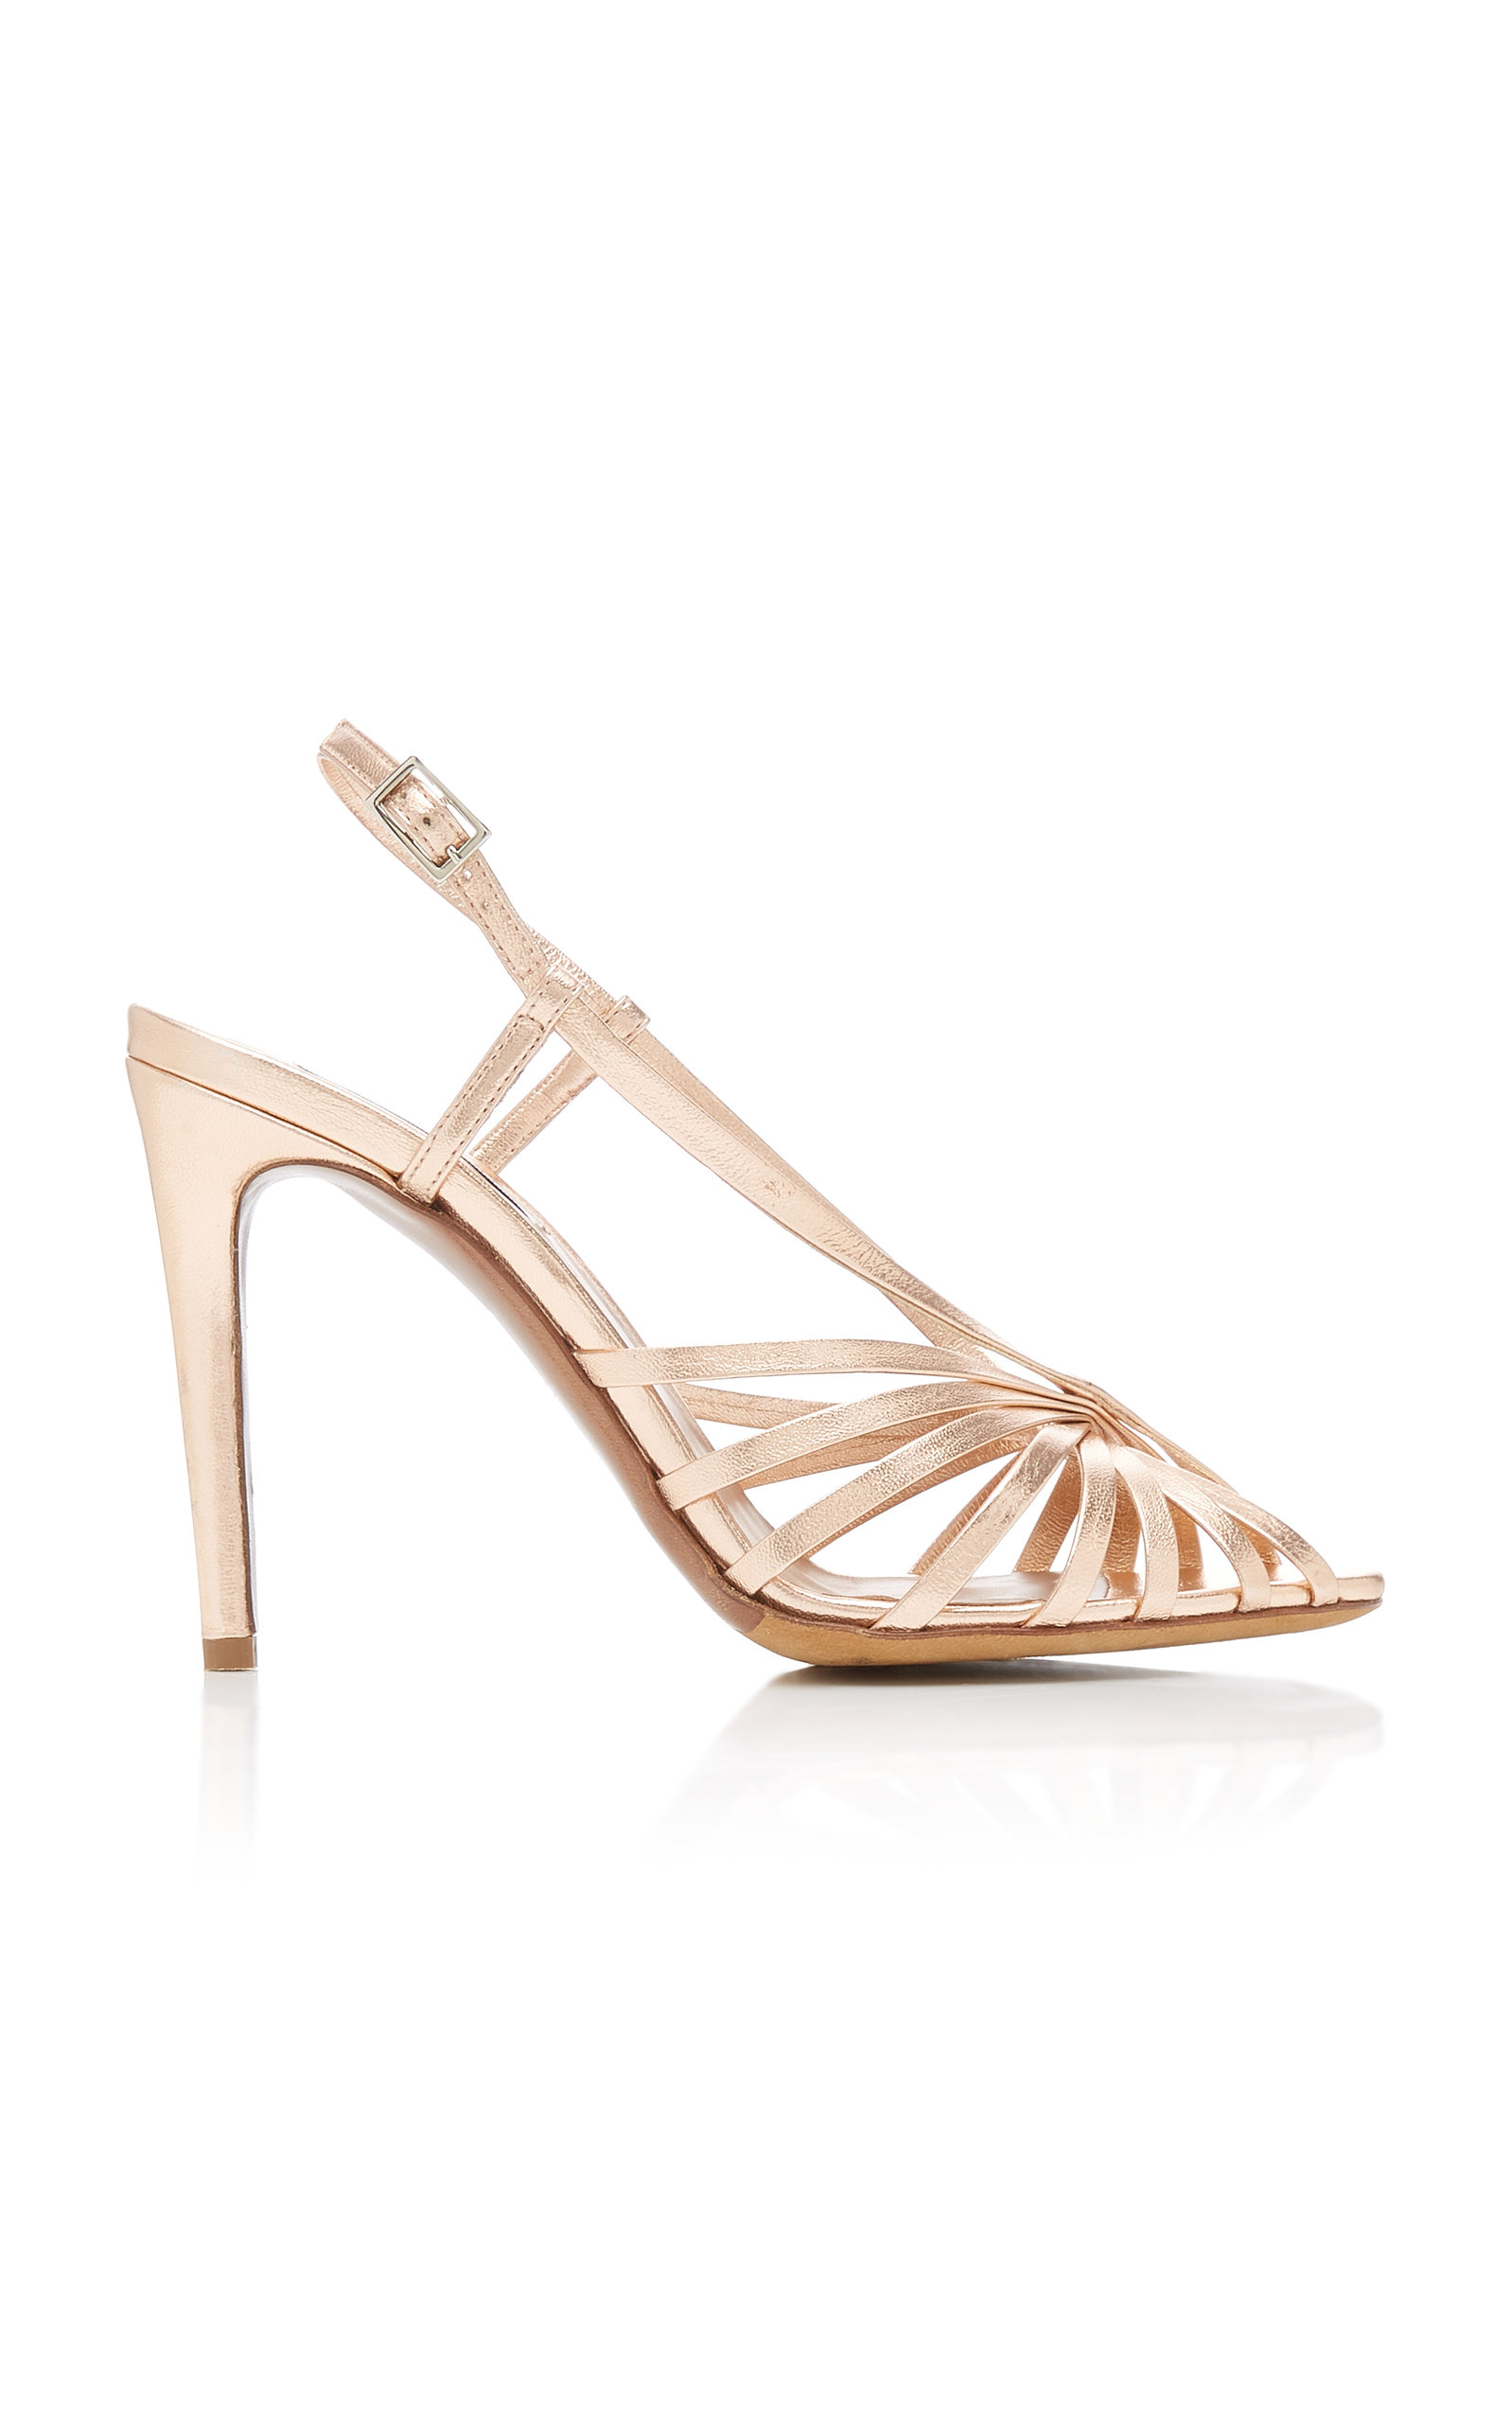 Tabitha Simmons JAZZ METALLIC LEATHER SLINGBACK SANDALS